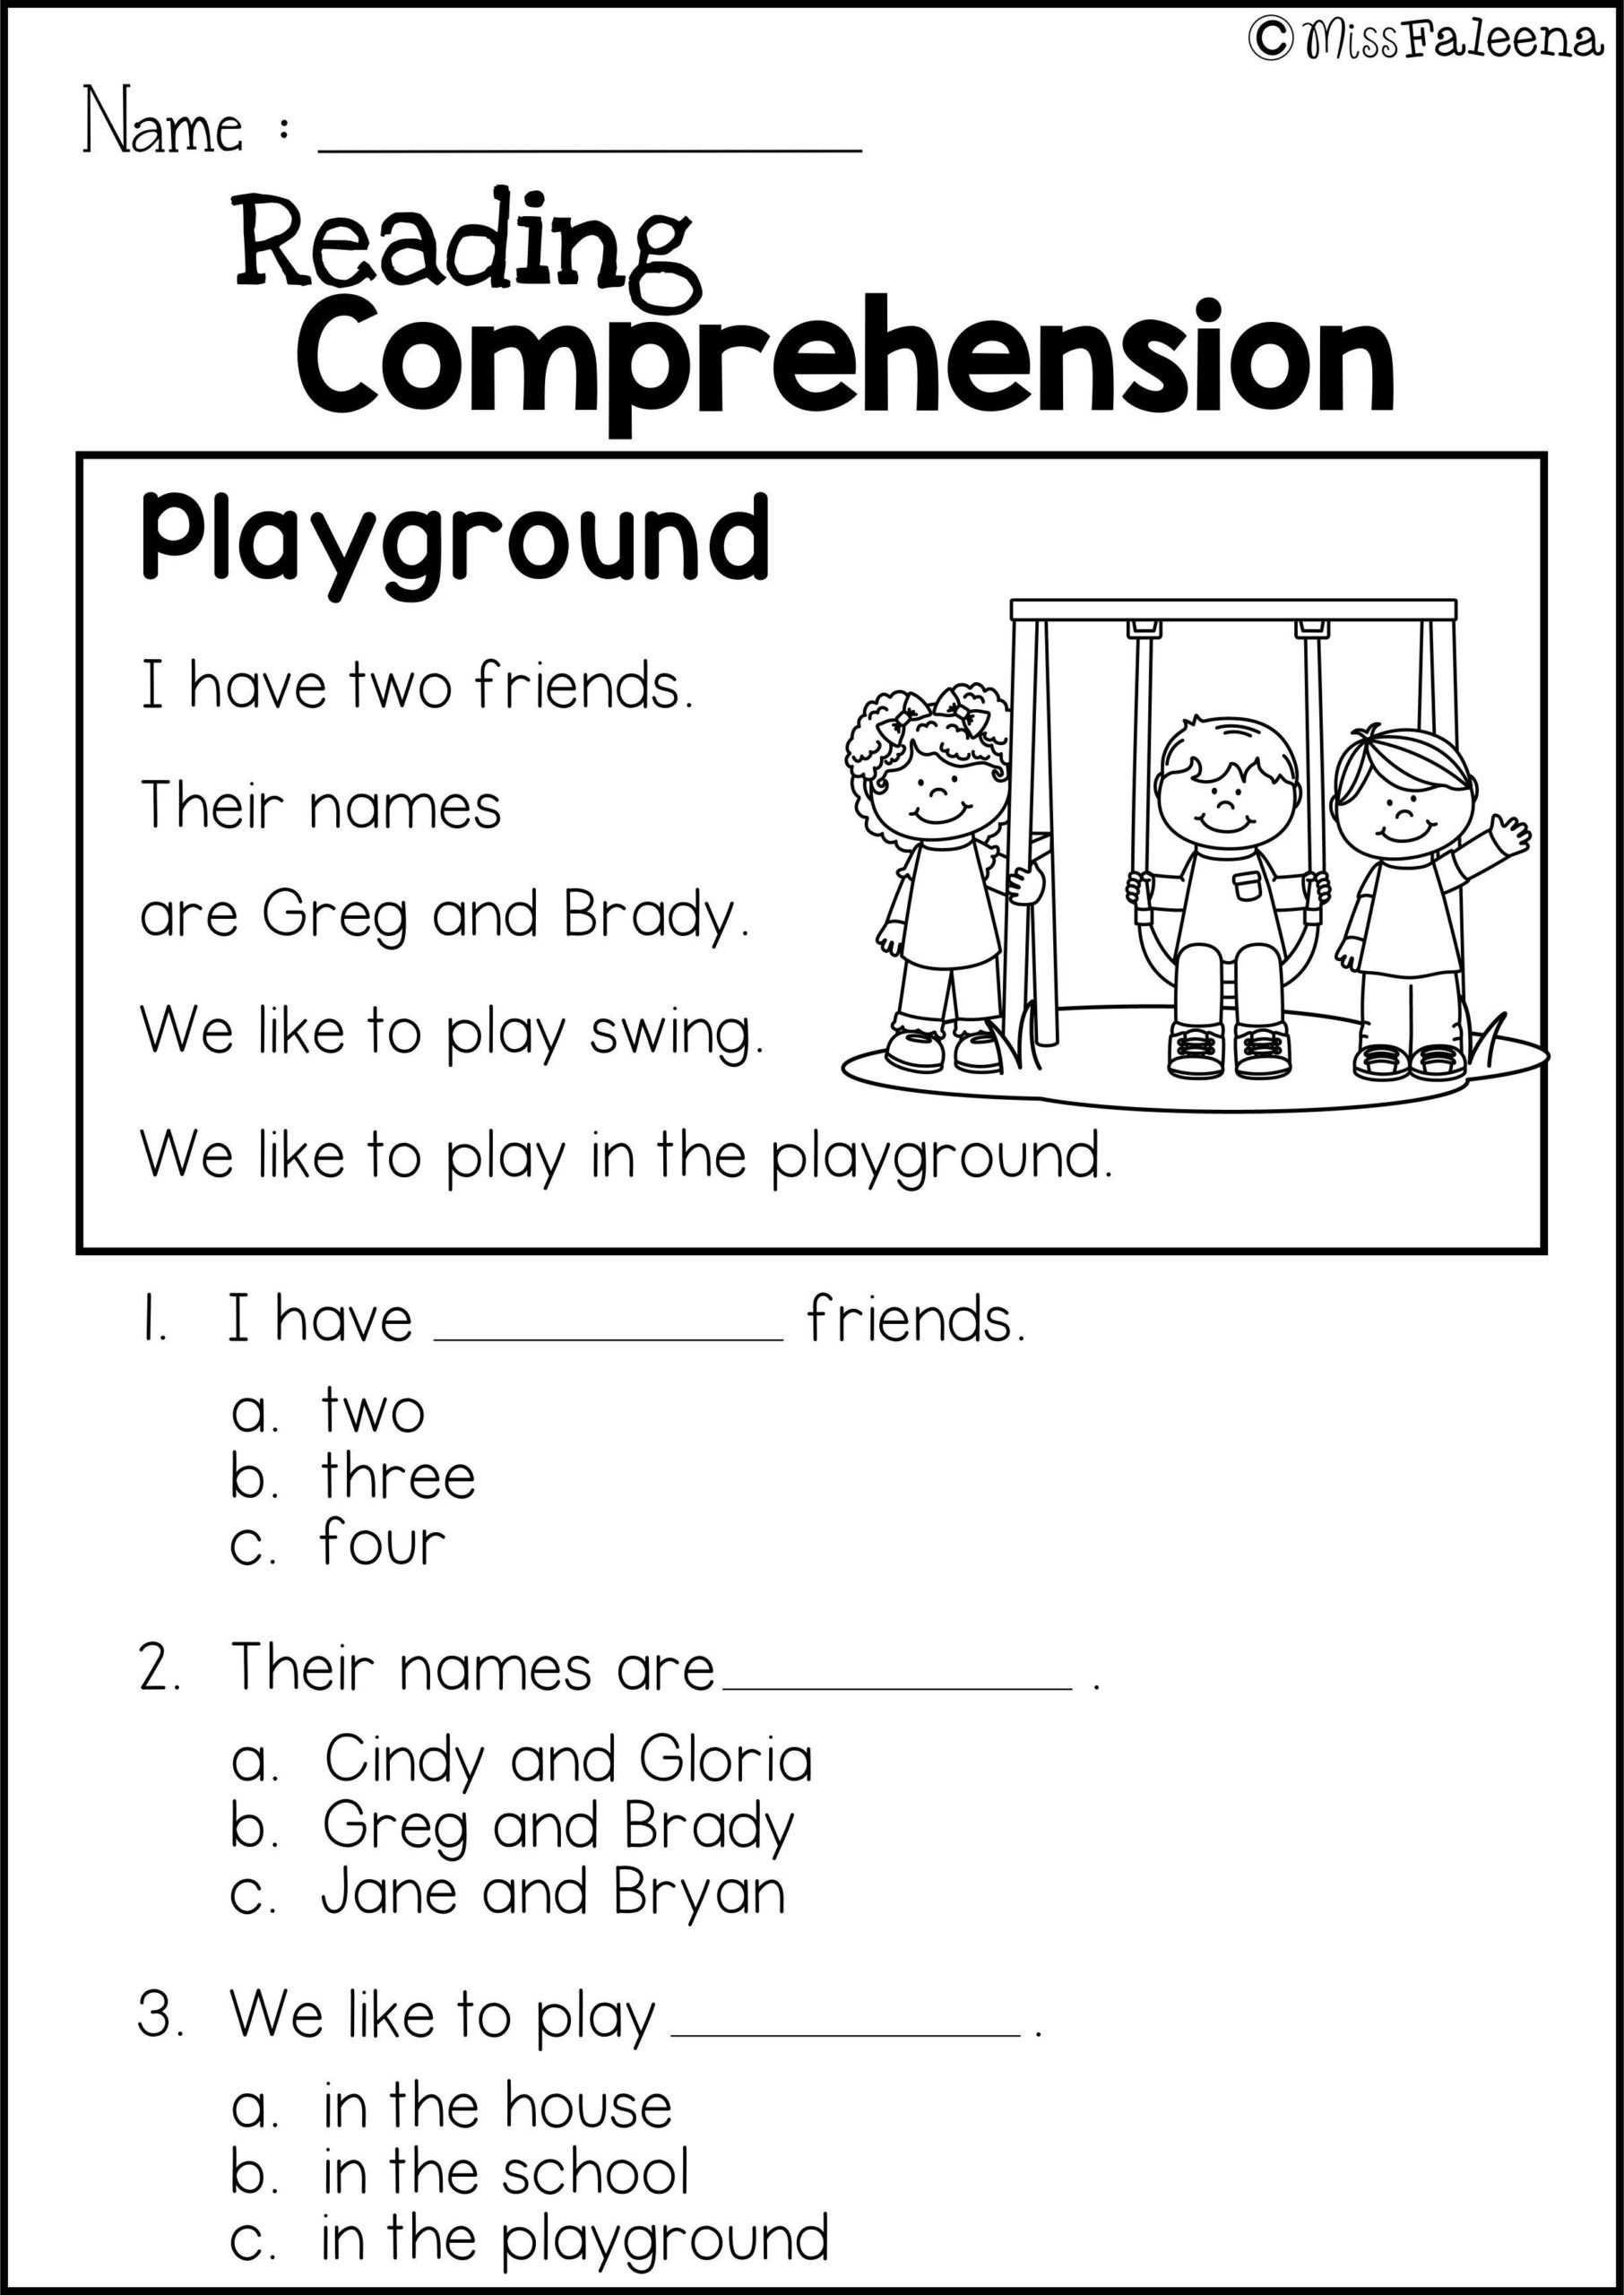 Second Grade Reading Worksheets Math Worksheet Printable Reading Prehension for Second